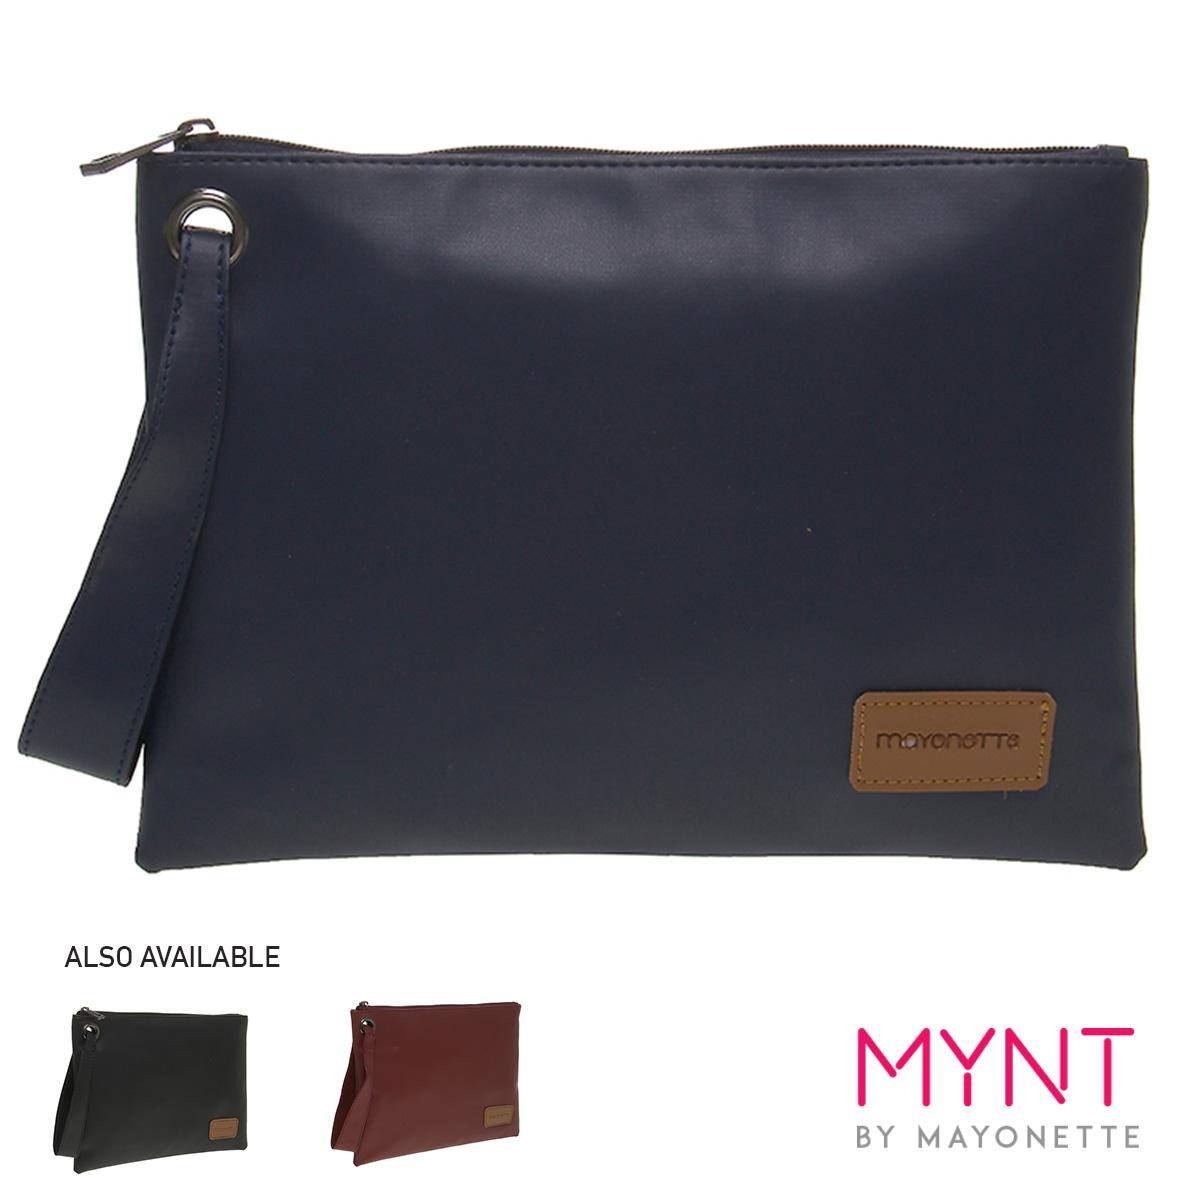 MYNT by Mayonette Dompet Korean Style Wanita   Pria Casual Simple Pouch  Solla Clutch 006bba40b1